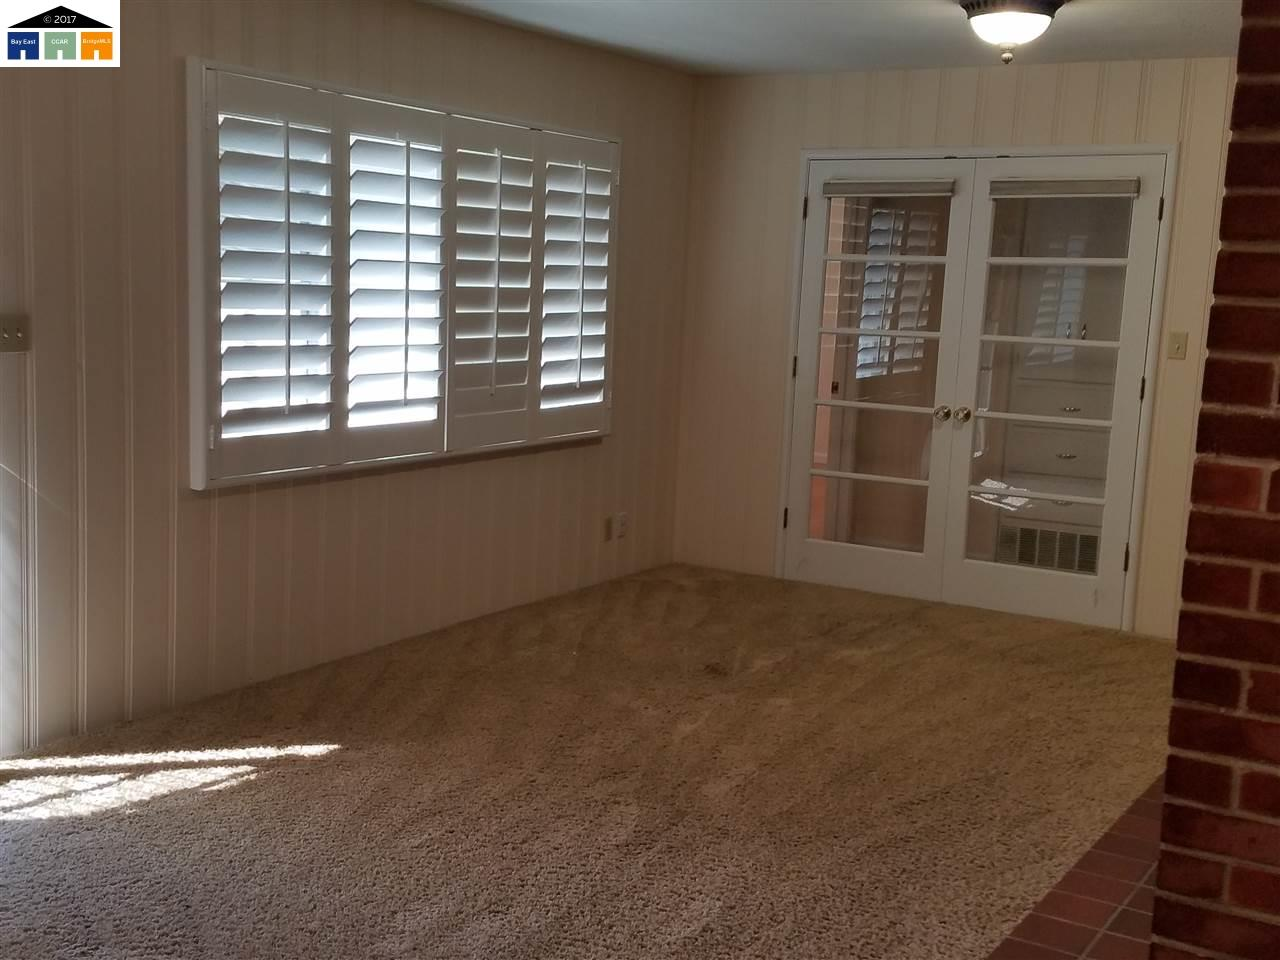 Additional photo for property listing at 1201 SYCAMORE  Modesto, カリフォルニア 95350 アメリカ合衆国